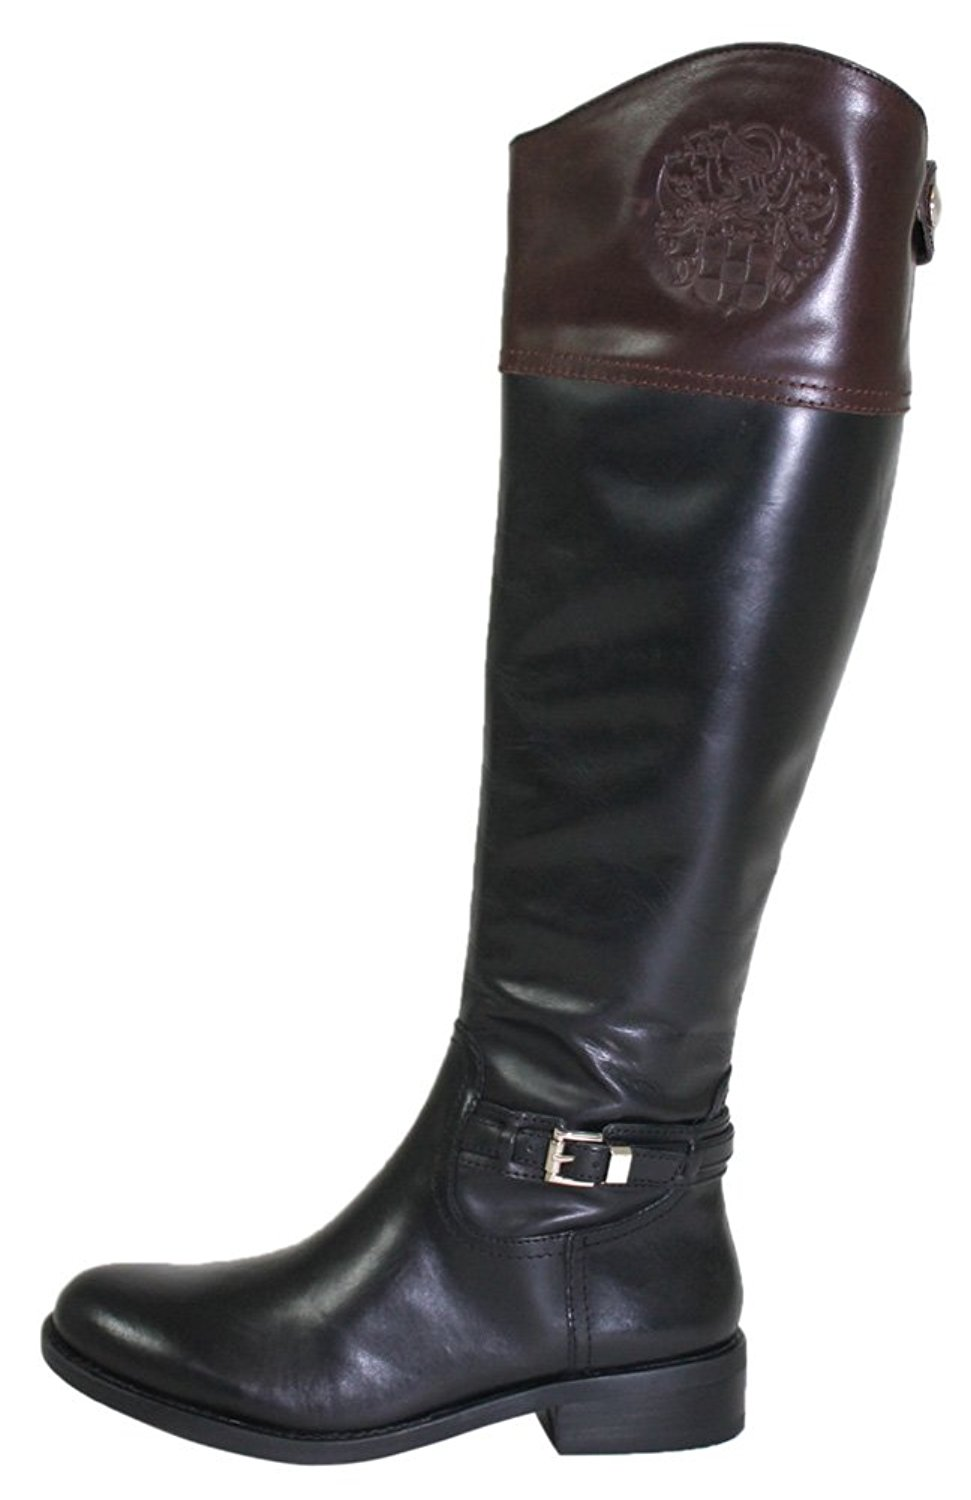 41ccd533fd8ef Get Quotations · Vince Camuto Kable Wide Calf Women US 7.5 Black Mid Calf  Boot